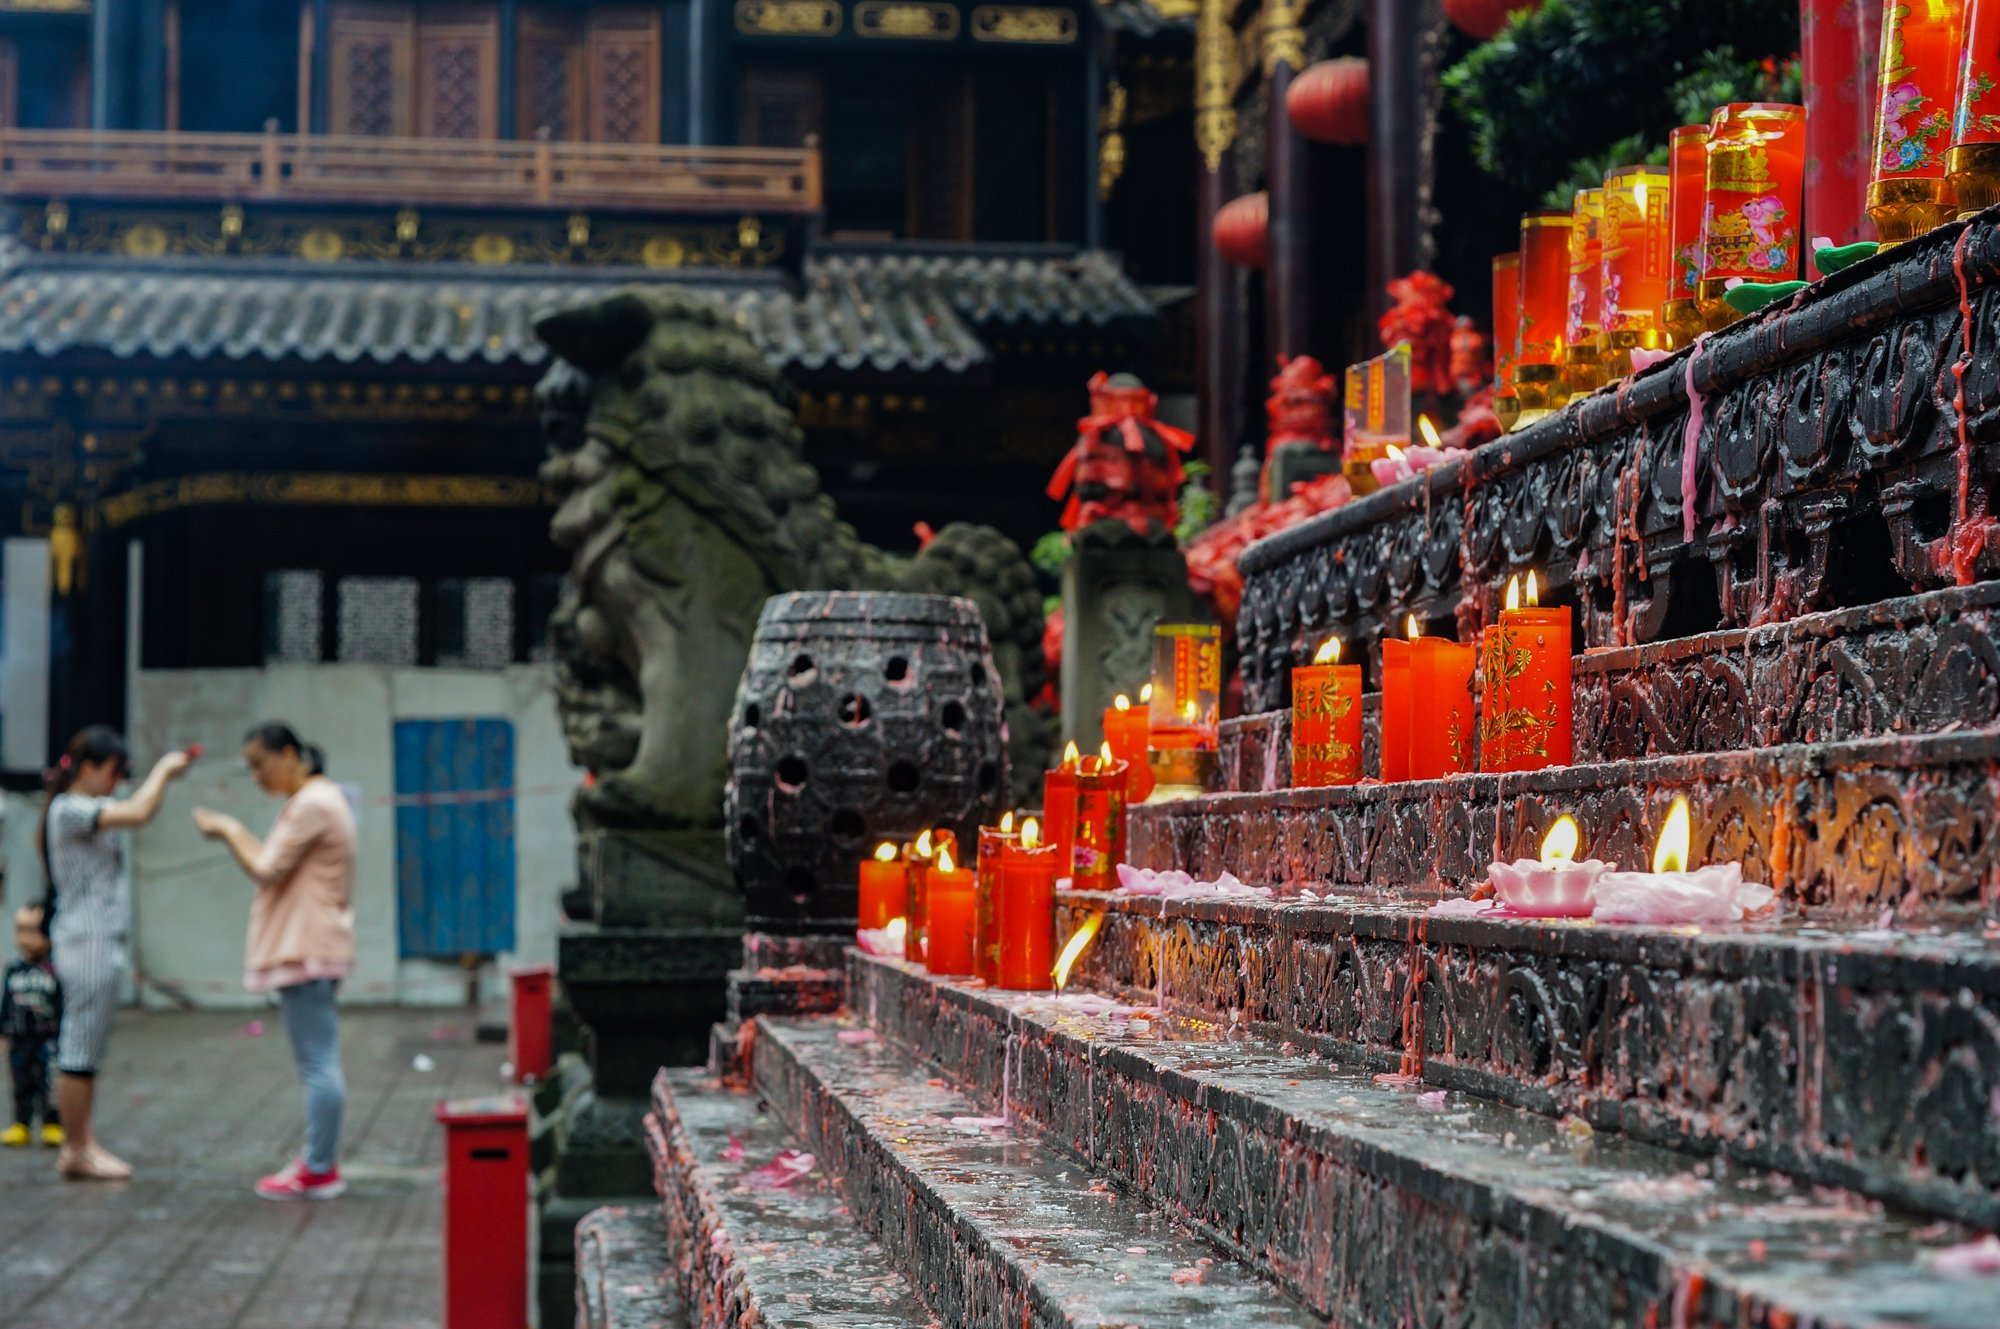 luohan temple candles